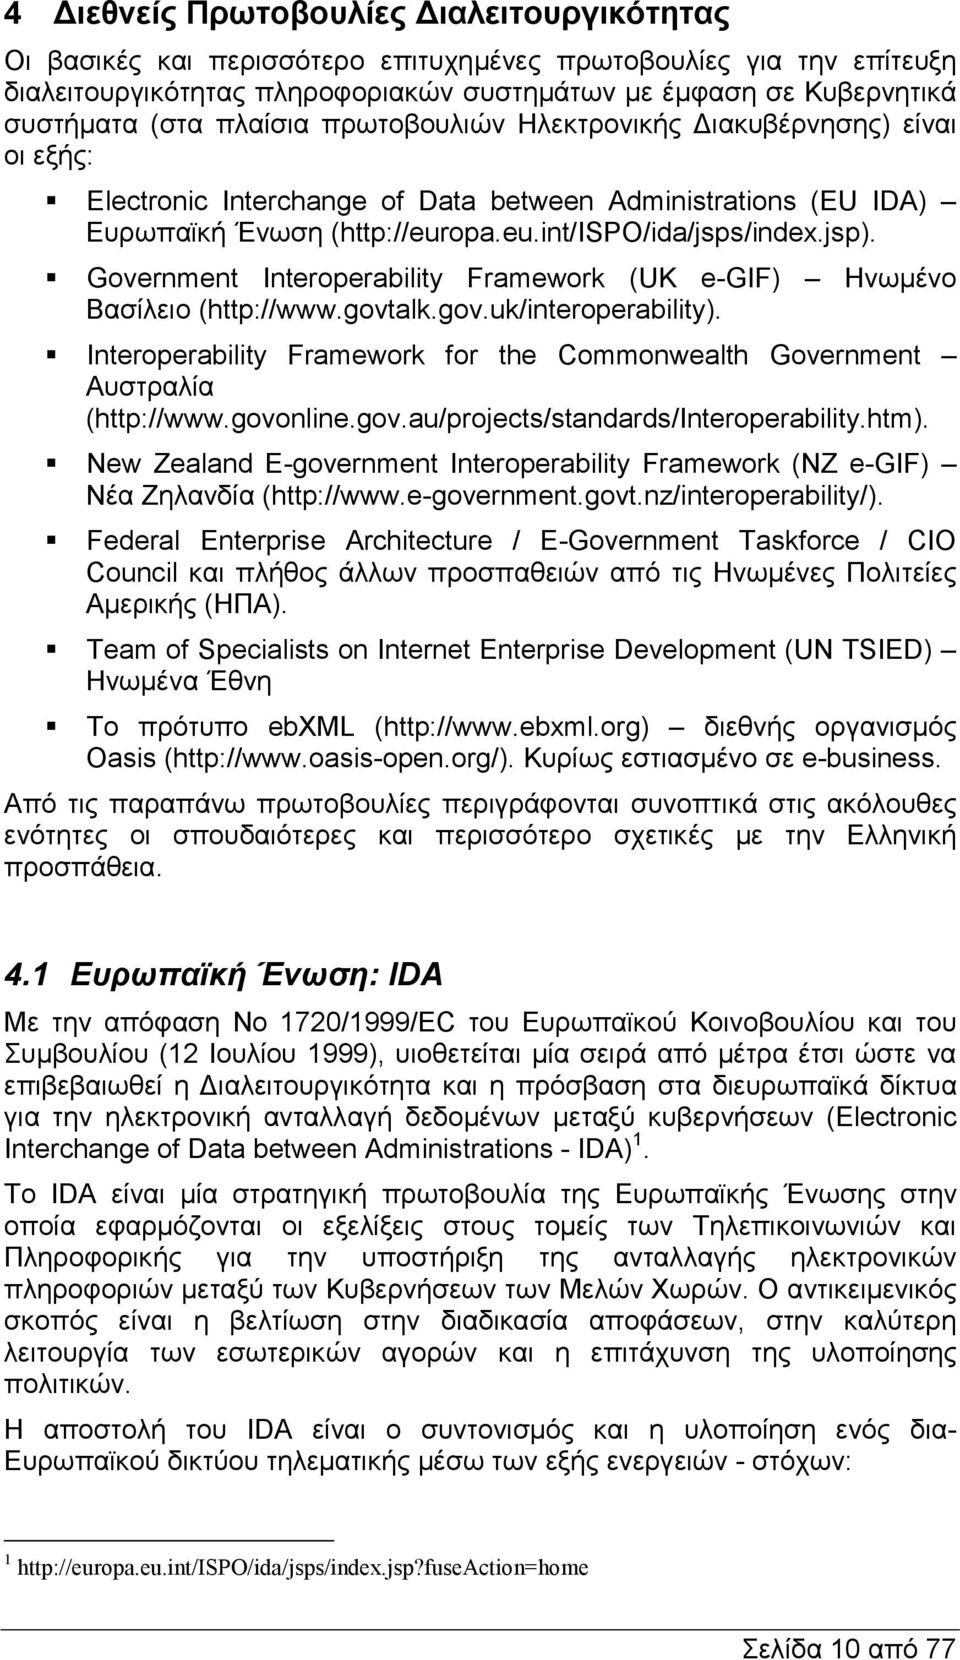 S Government Interoperability Framework (UK e-gif) Ηνωµένο Βασίλειο (http://www.govtalk.gov.uk/interoperability). S Interoperability Framework for the Commonwealth Government Αυστραλία (http://www.